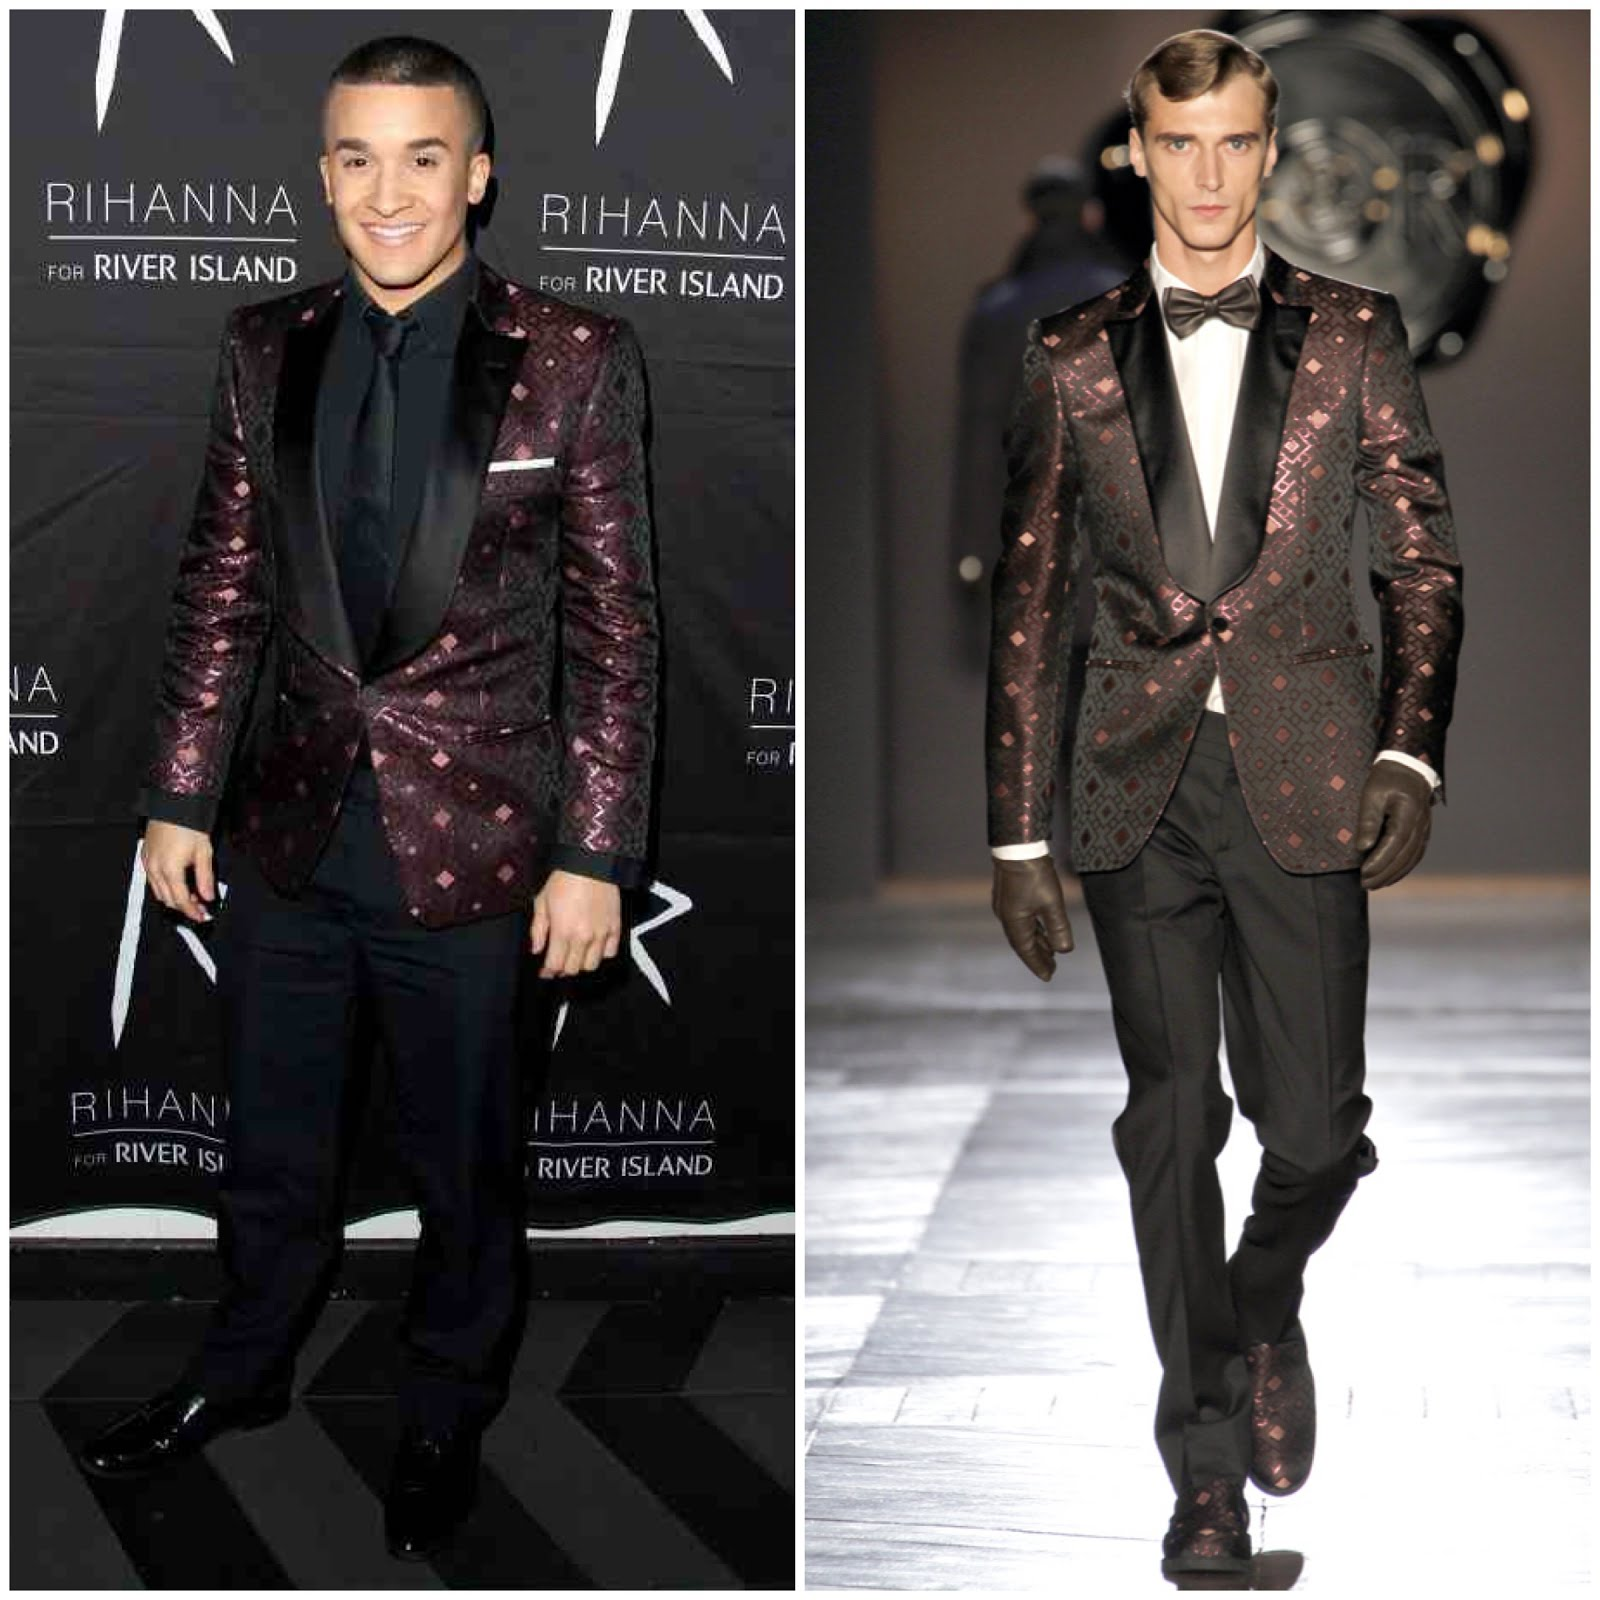 00O00 Menswear Blog Jahmene Douglas in Viktor & Rolf - Rihanna for River Island after party